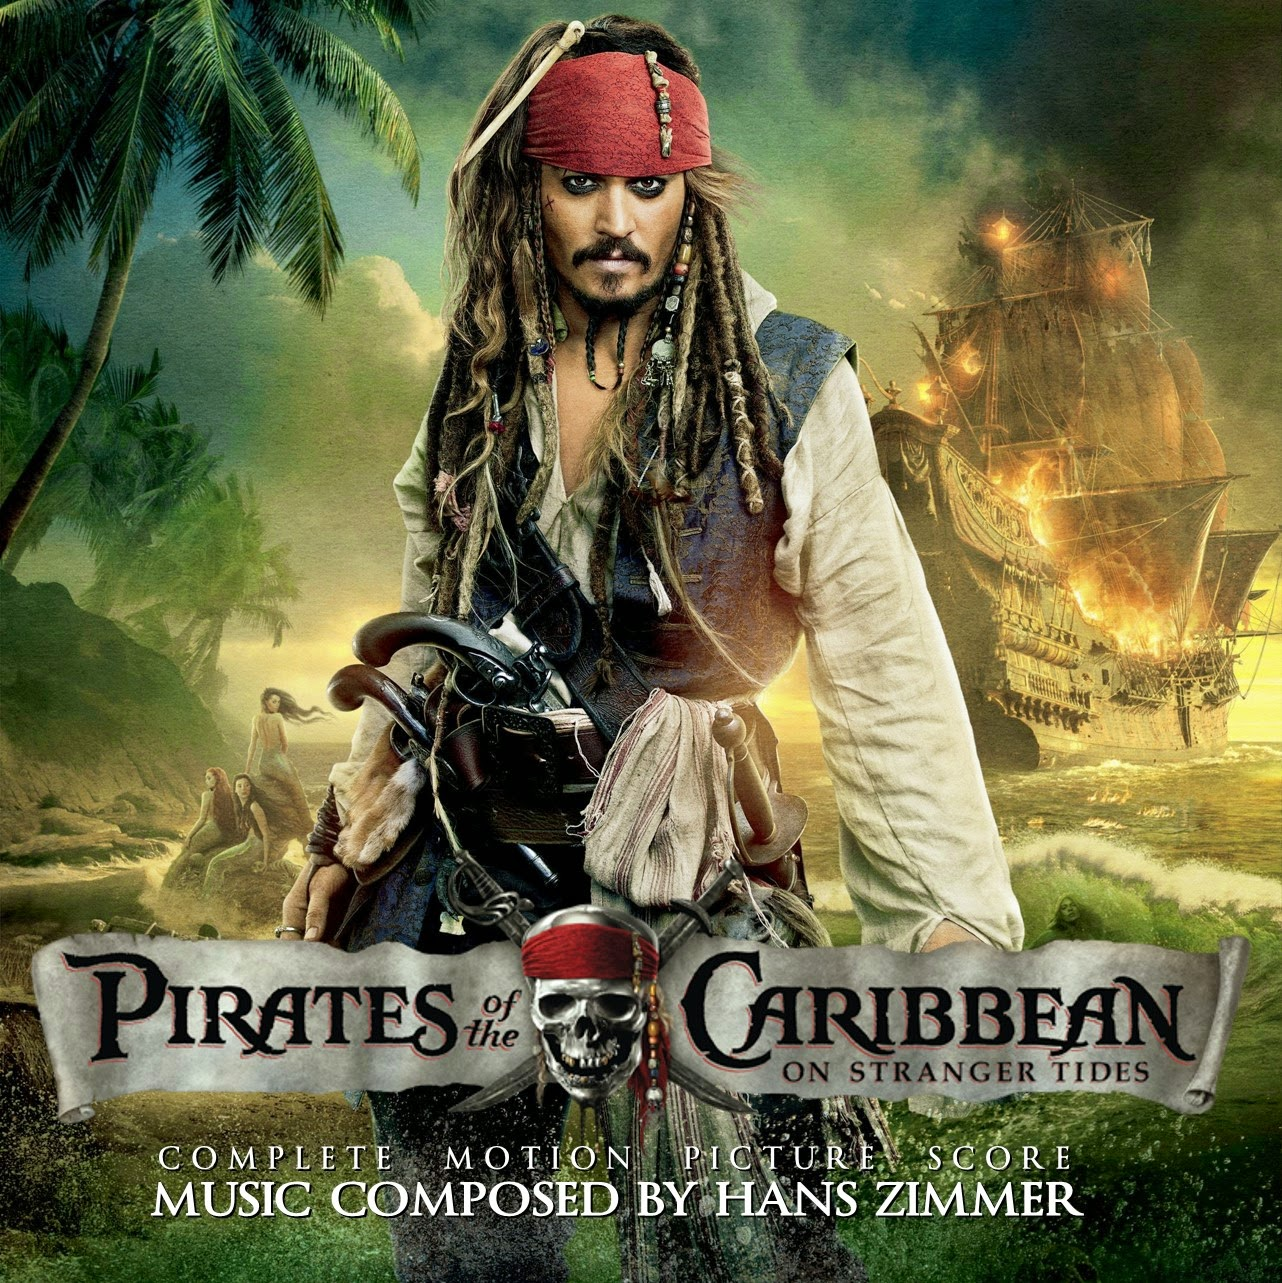 le blog de chief dundee: pirates of the caribbean: on stranger tides